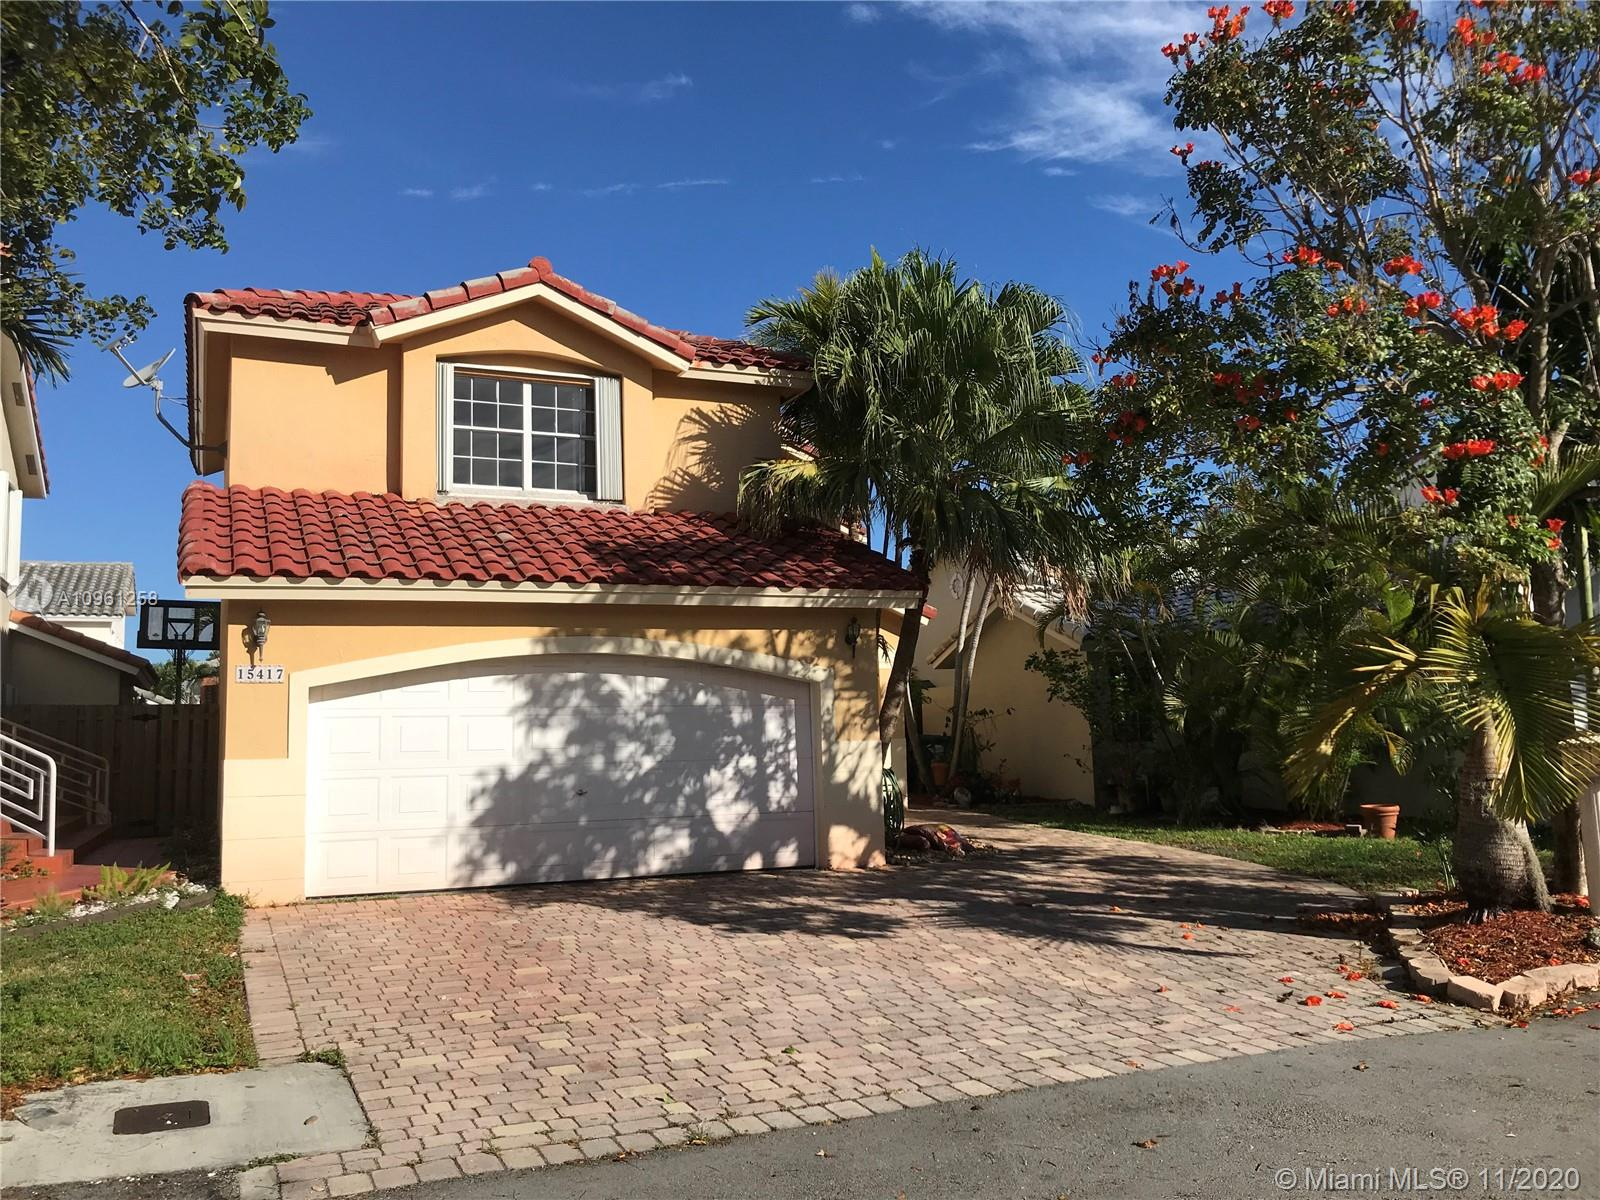 Lakes Of The Meadow - 15417 SW 50th Ln, Miami, FL 33185